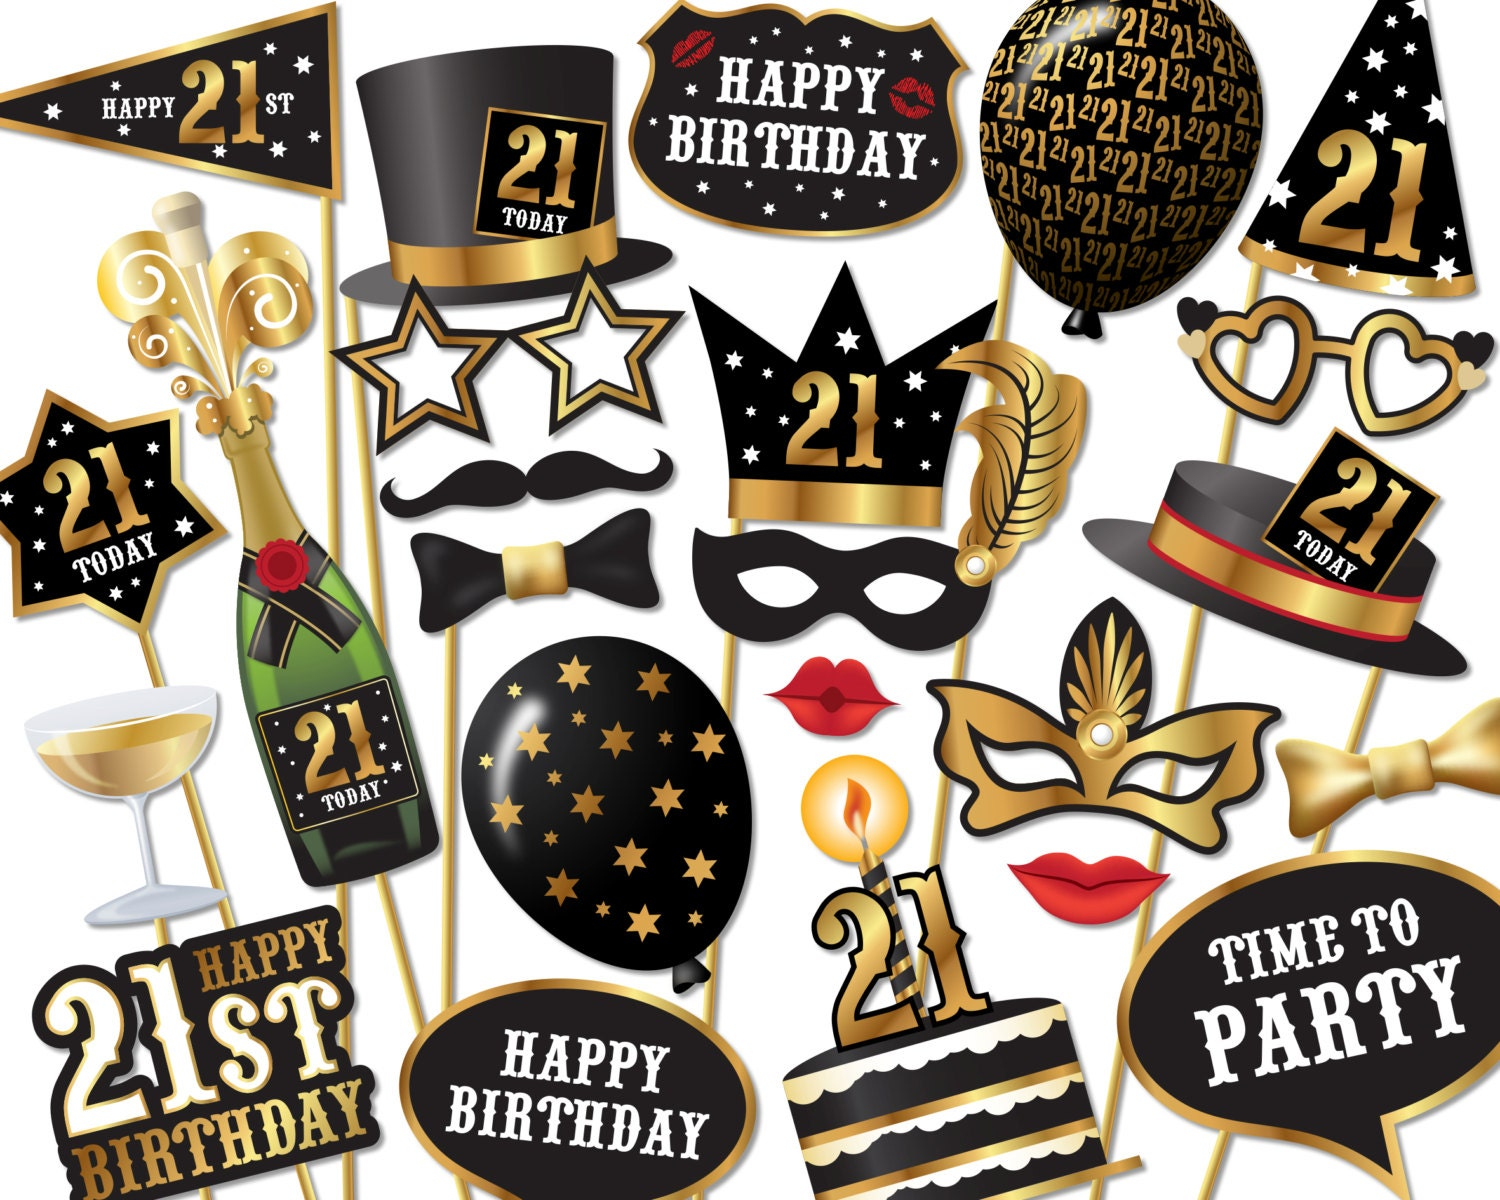 21st birthday photo booth props instant download printable for 21st birthday decoration